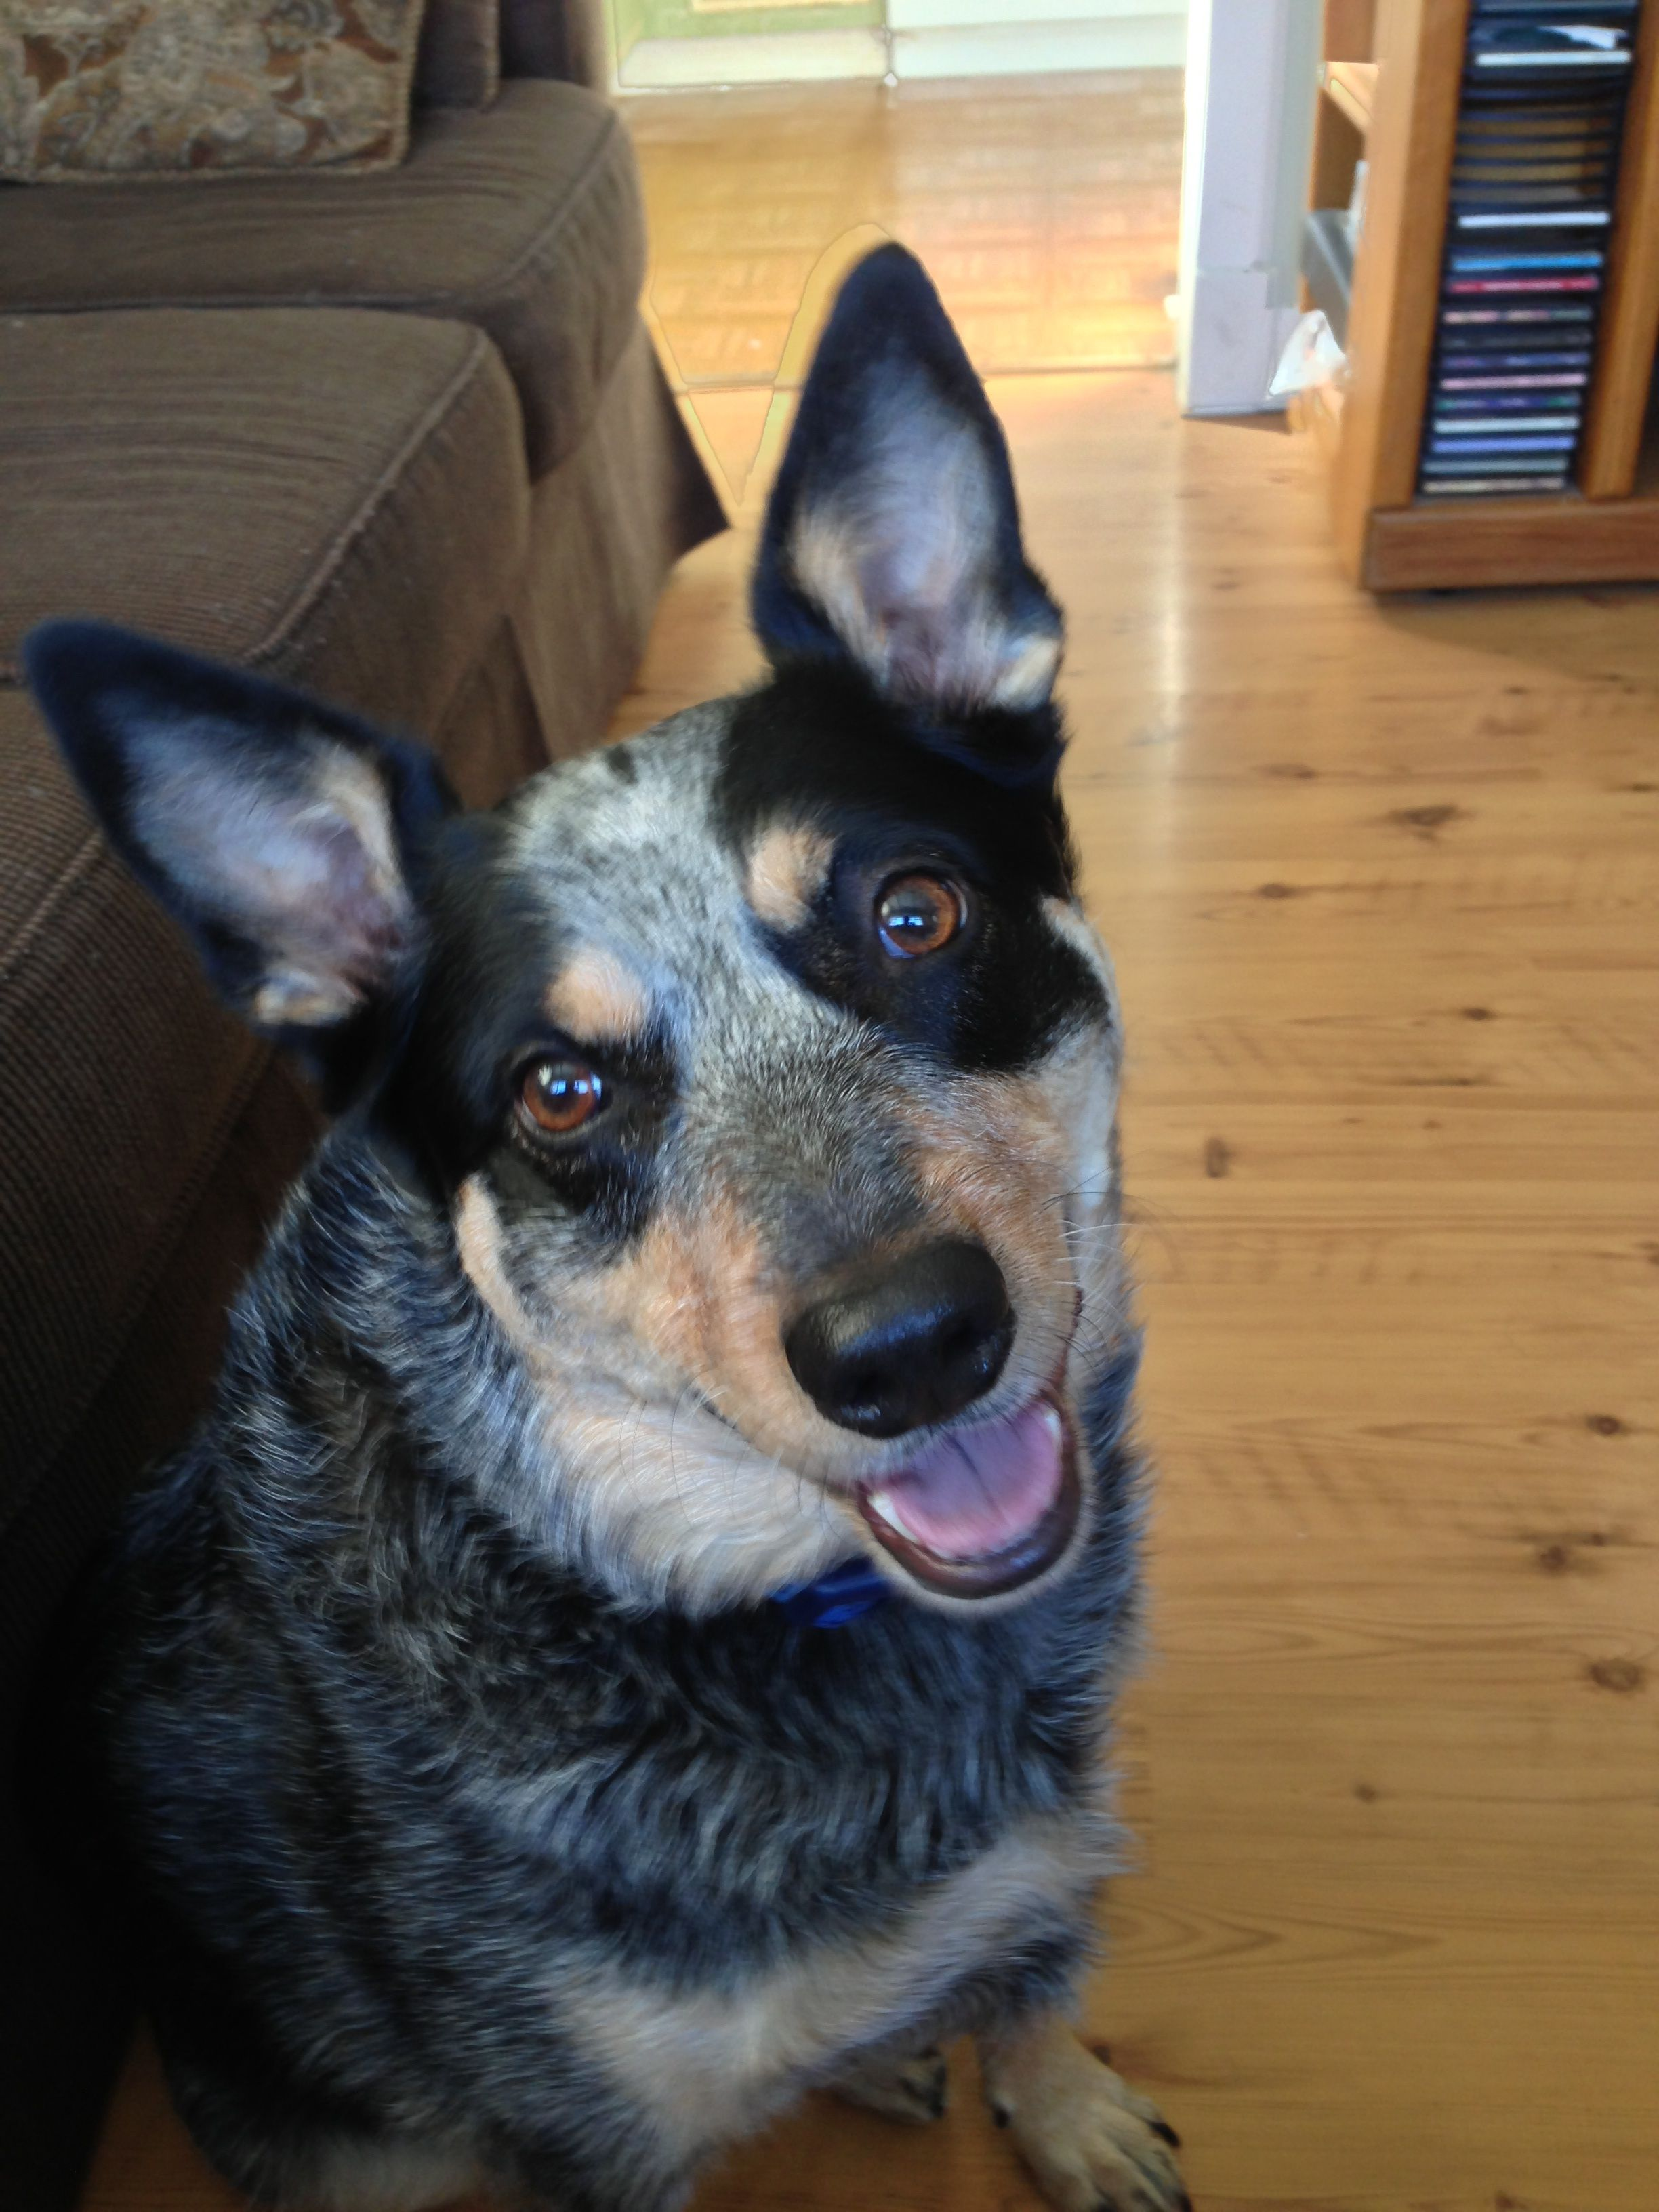 Lucy - Australian cattle dog.  Did you just say go play ball?